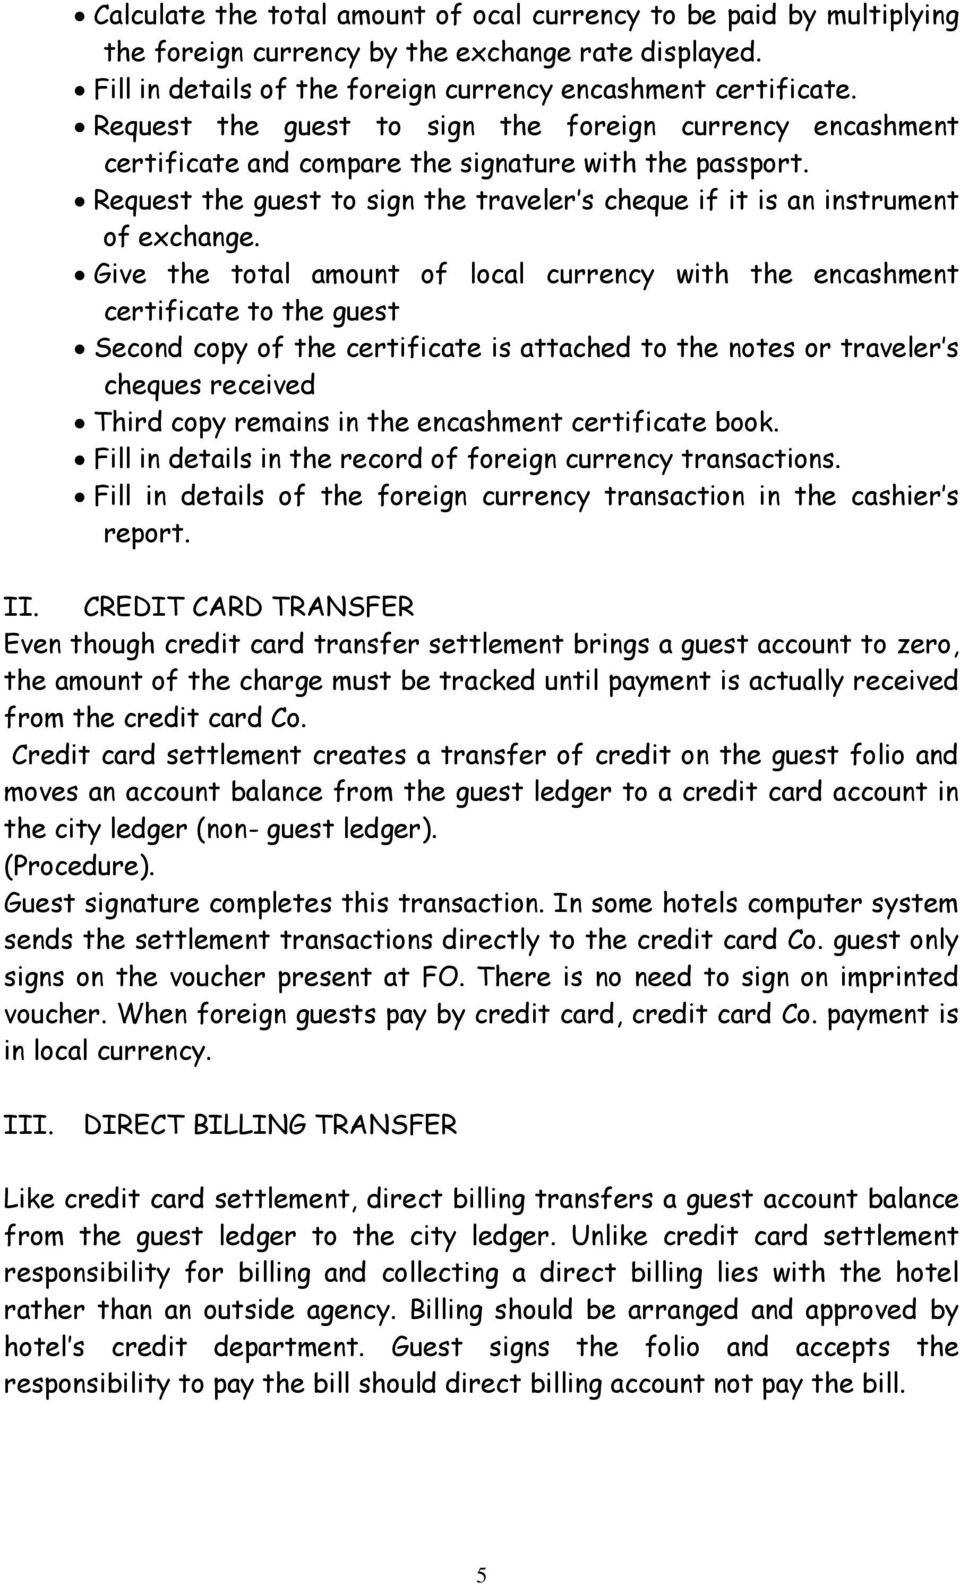 Give the total amount of local currency with the encashment certificate to the guest Second copy of the certificate is attached to the notes or traveler s cheques received Third copy remains in the